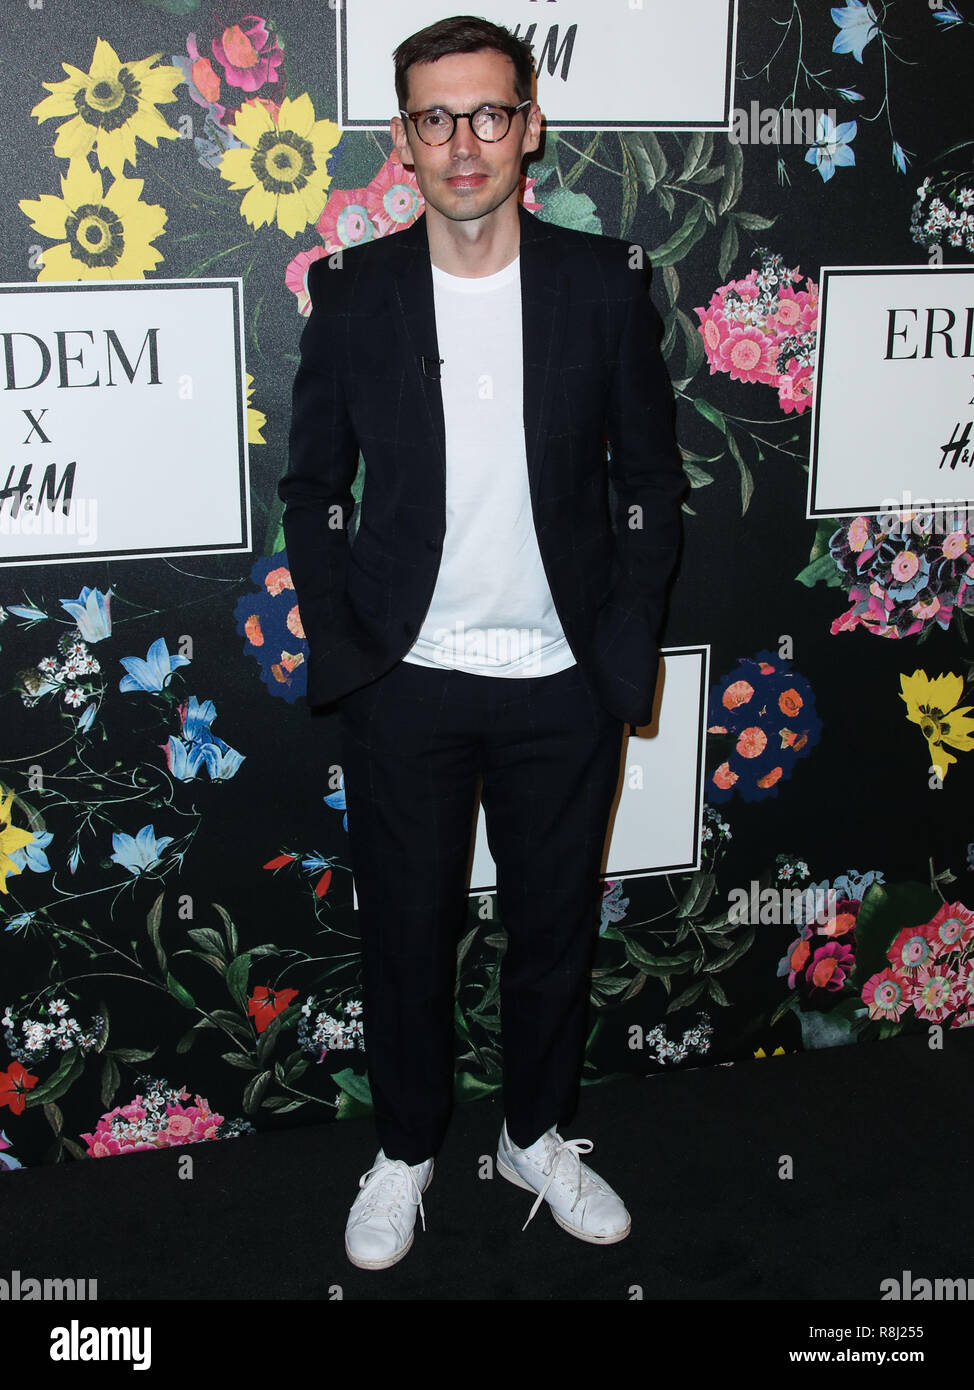 LOS ANGELES, CA, USA - OCTOBER 18: Erdem Moralioglu at the H&M x ERDEM Runway Show & Party held at The Ebell Club of Los Angeles on October 18, 2017 in Los Angeles, California, United States. (Photo by Xavier Collin/Image Press Agency) - Stock Image